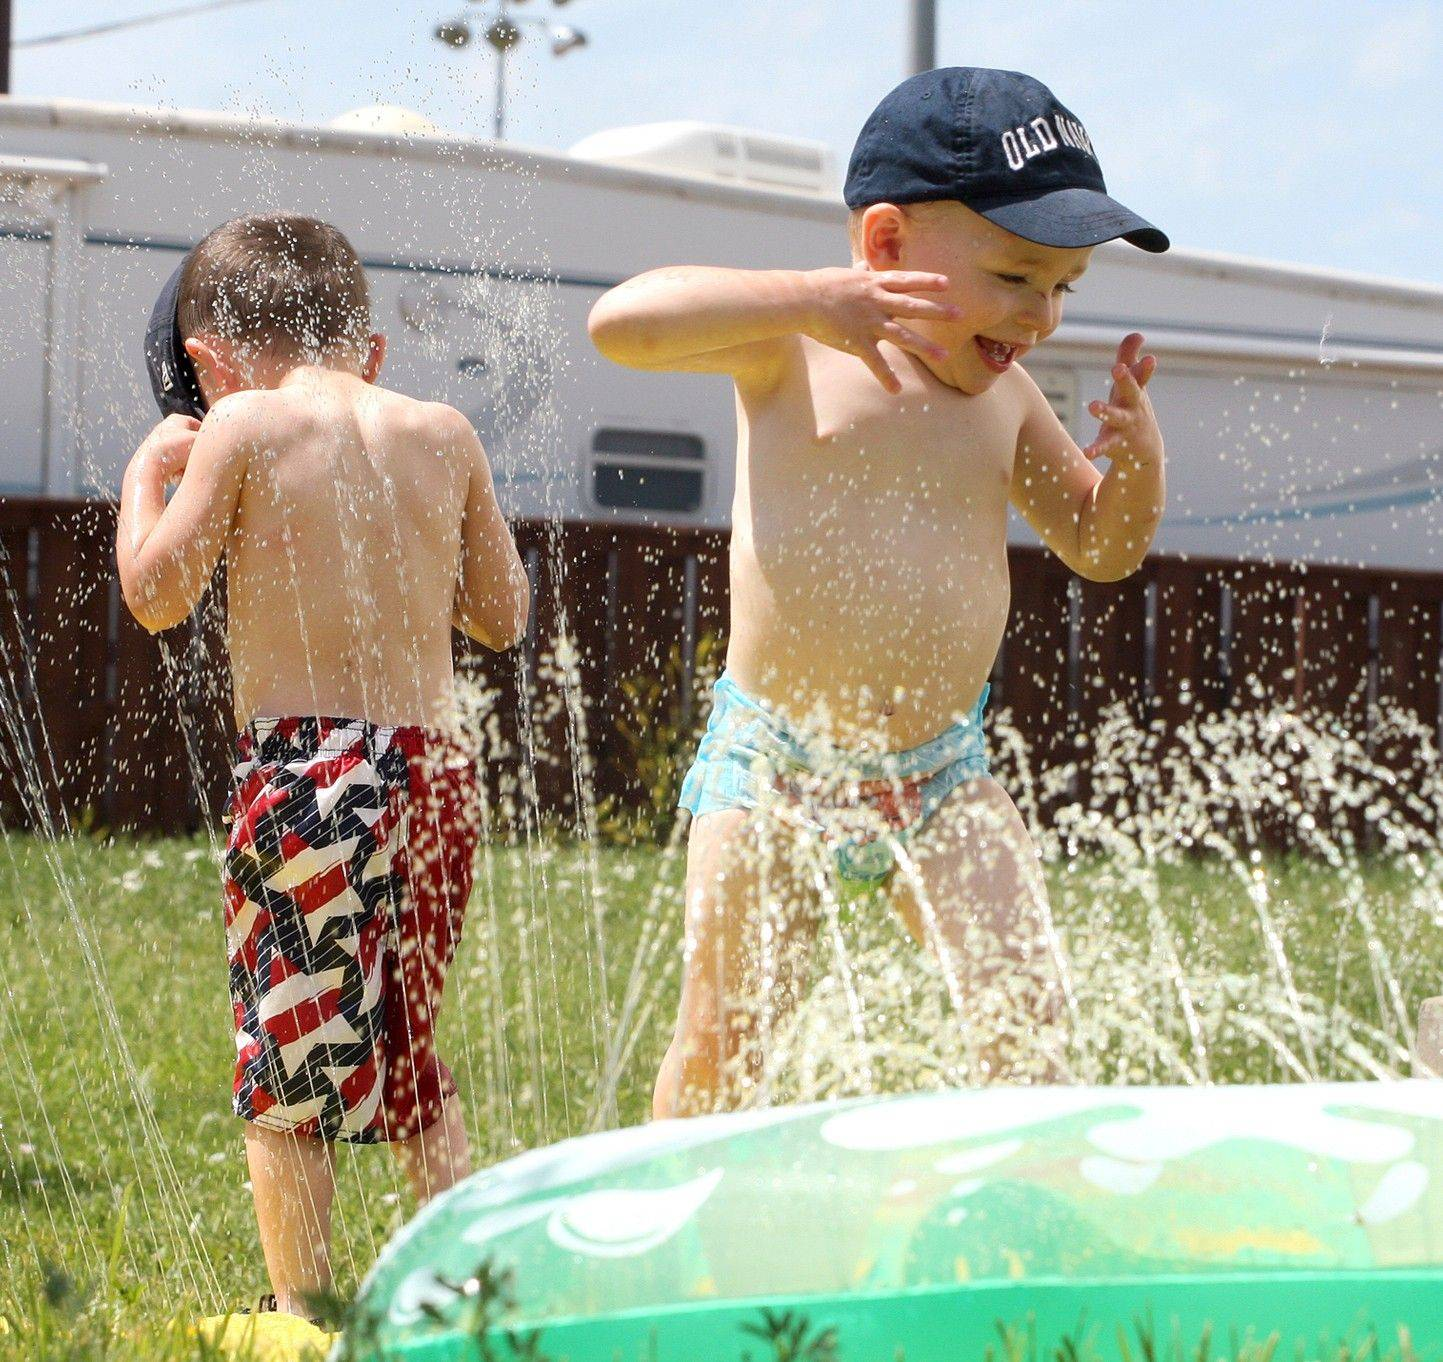 The National Weather Service has issued a heat advisory starting at noon Friday as near record-breaking temperatures are expected after less severe thunderstorms move out of the area, officials said.